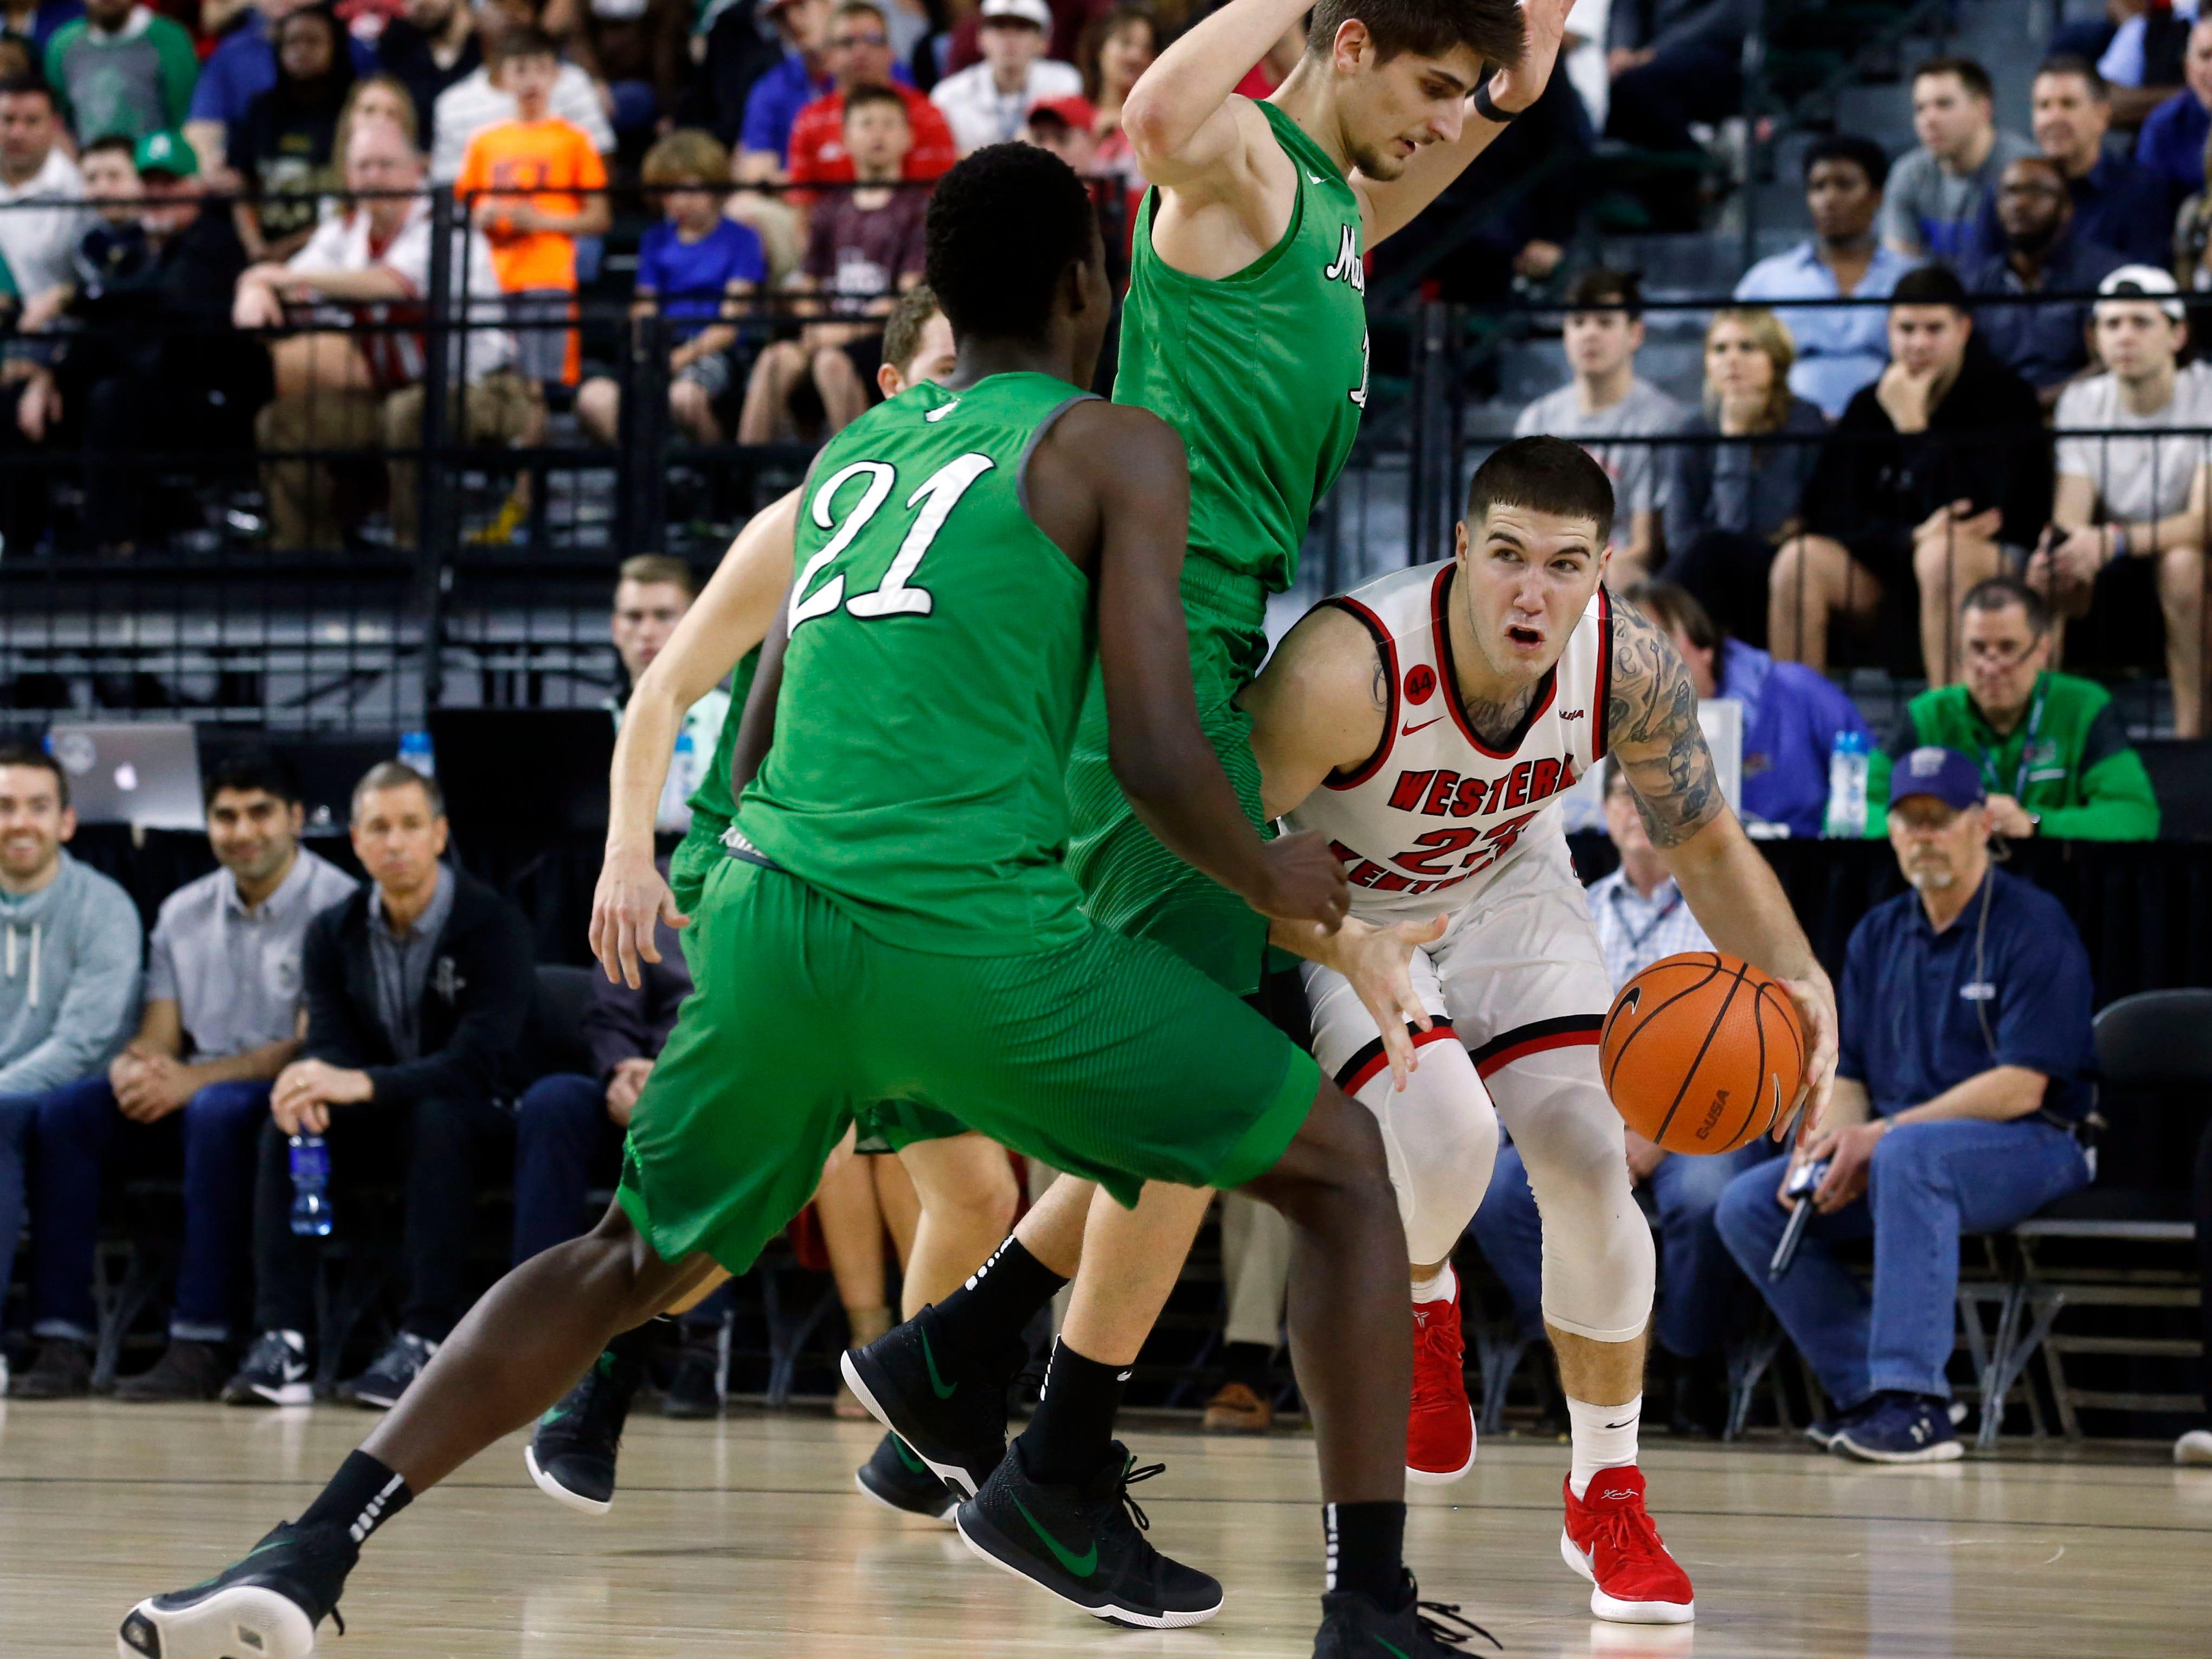 Marshall forward Darius George (21) and forward Ajdin Penava (11) defend Western Kentucky forward Justin Johnson (23) during the first half of the NCAA Conference USA Men's Basketball Championship Game in Frisco, Texas, Saturday, March 10, 2018. (AP Photo/Michael Ainsworth)